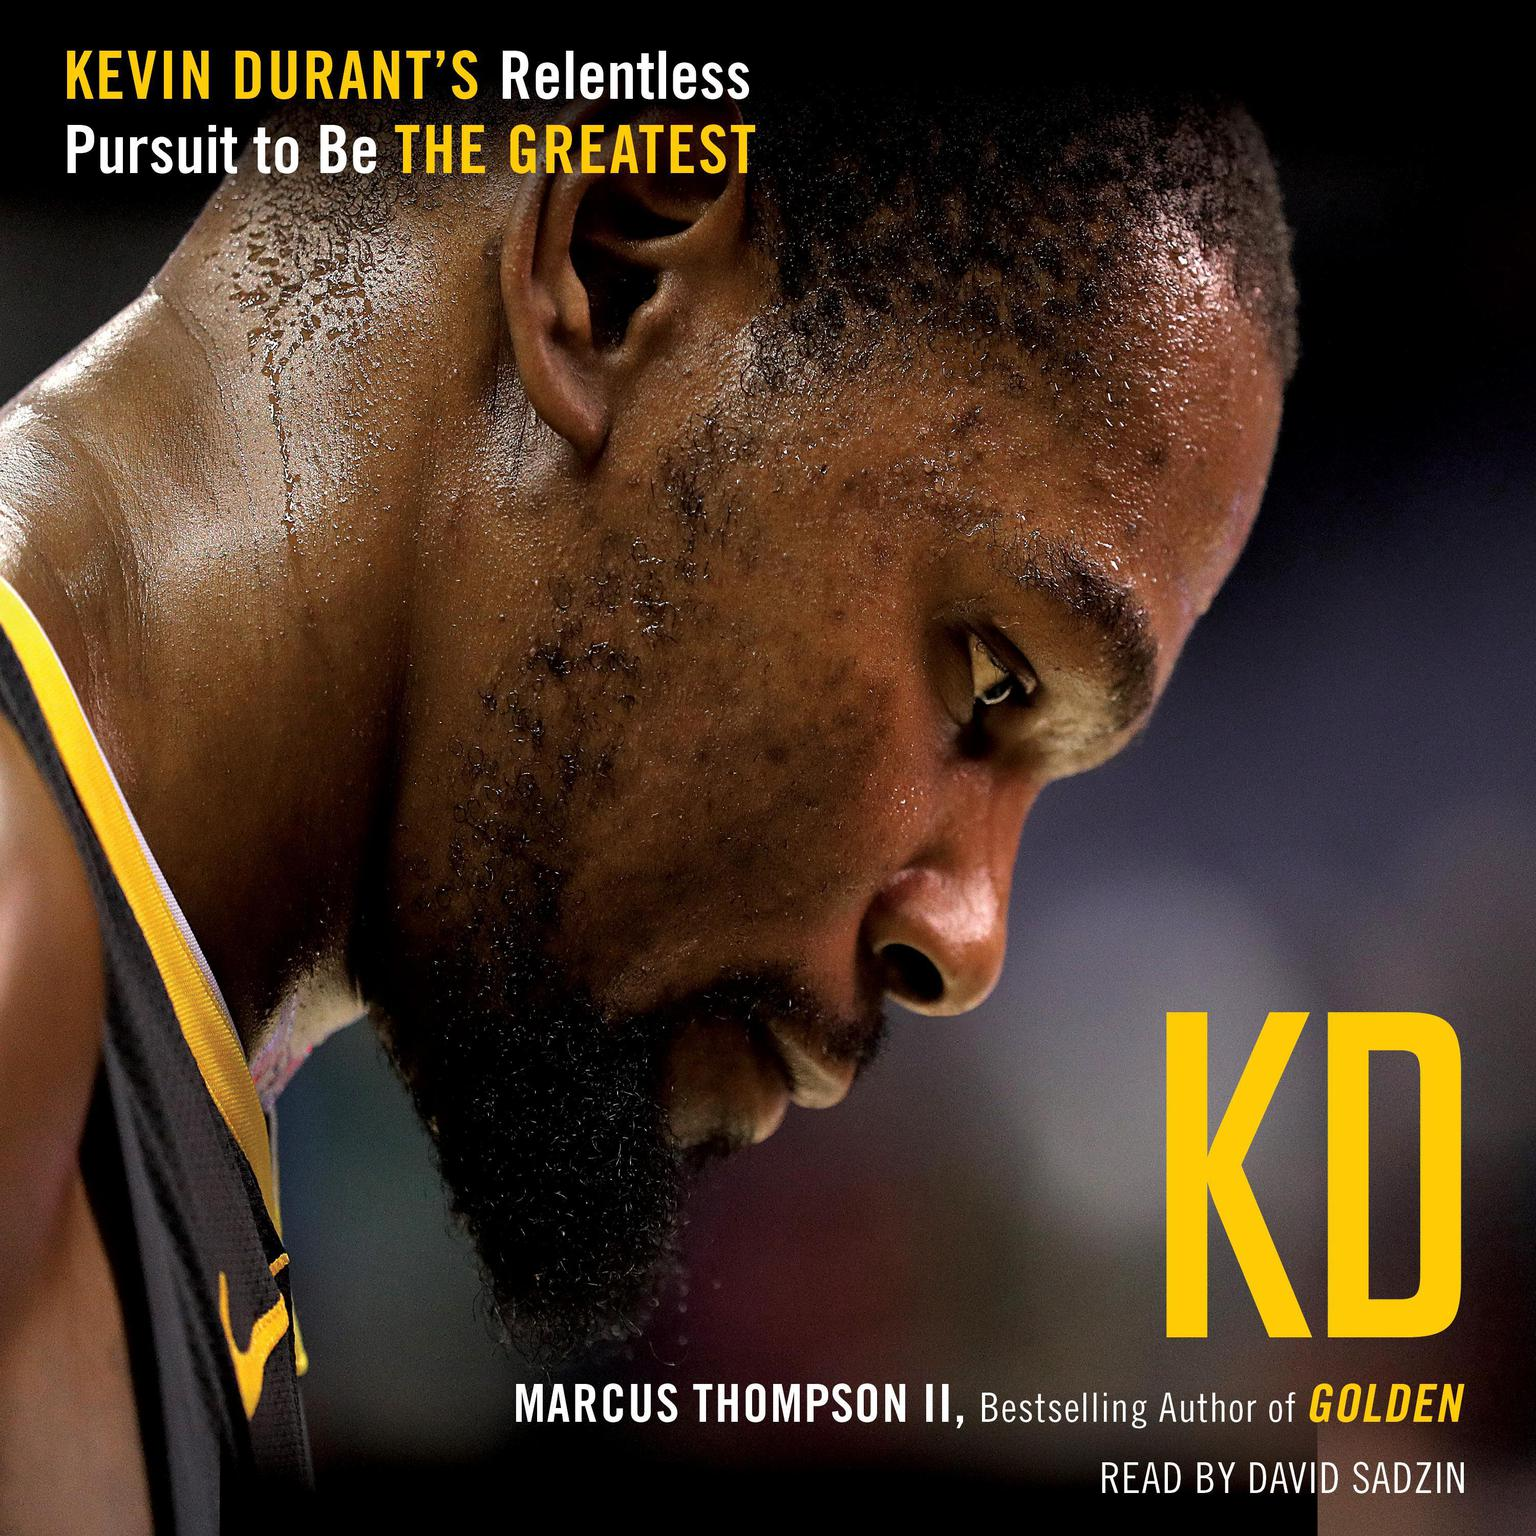 Printable KD: Kevin Durant's Relentless Pursuit to Be the Greatest Audiobook Cover Art